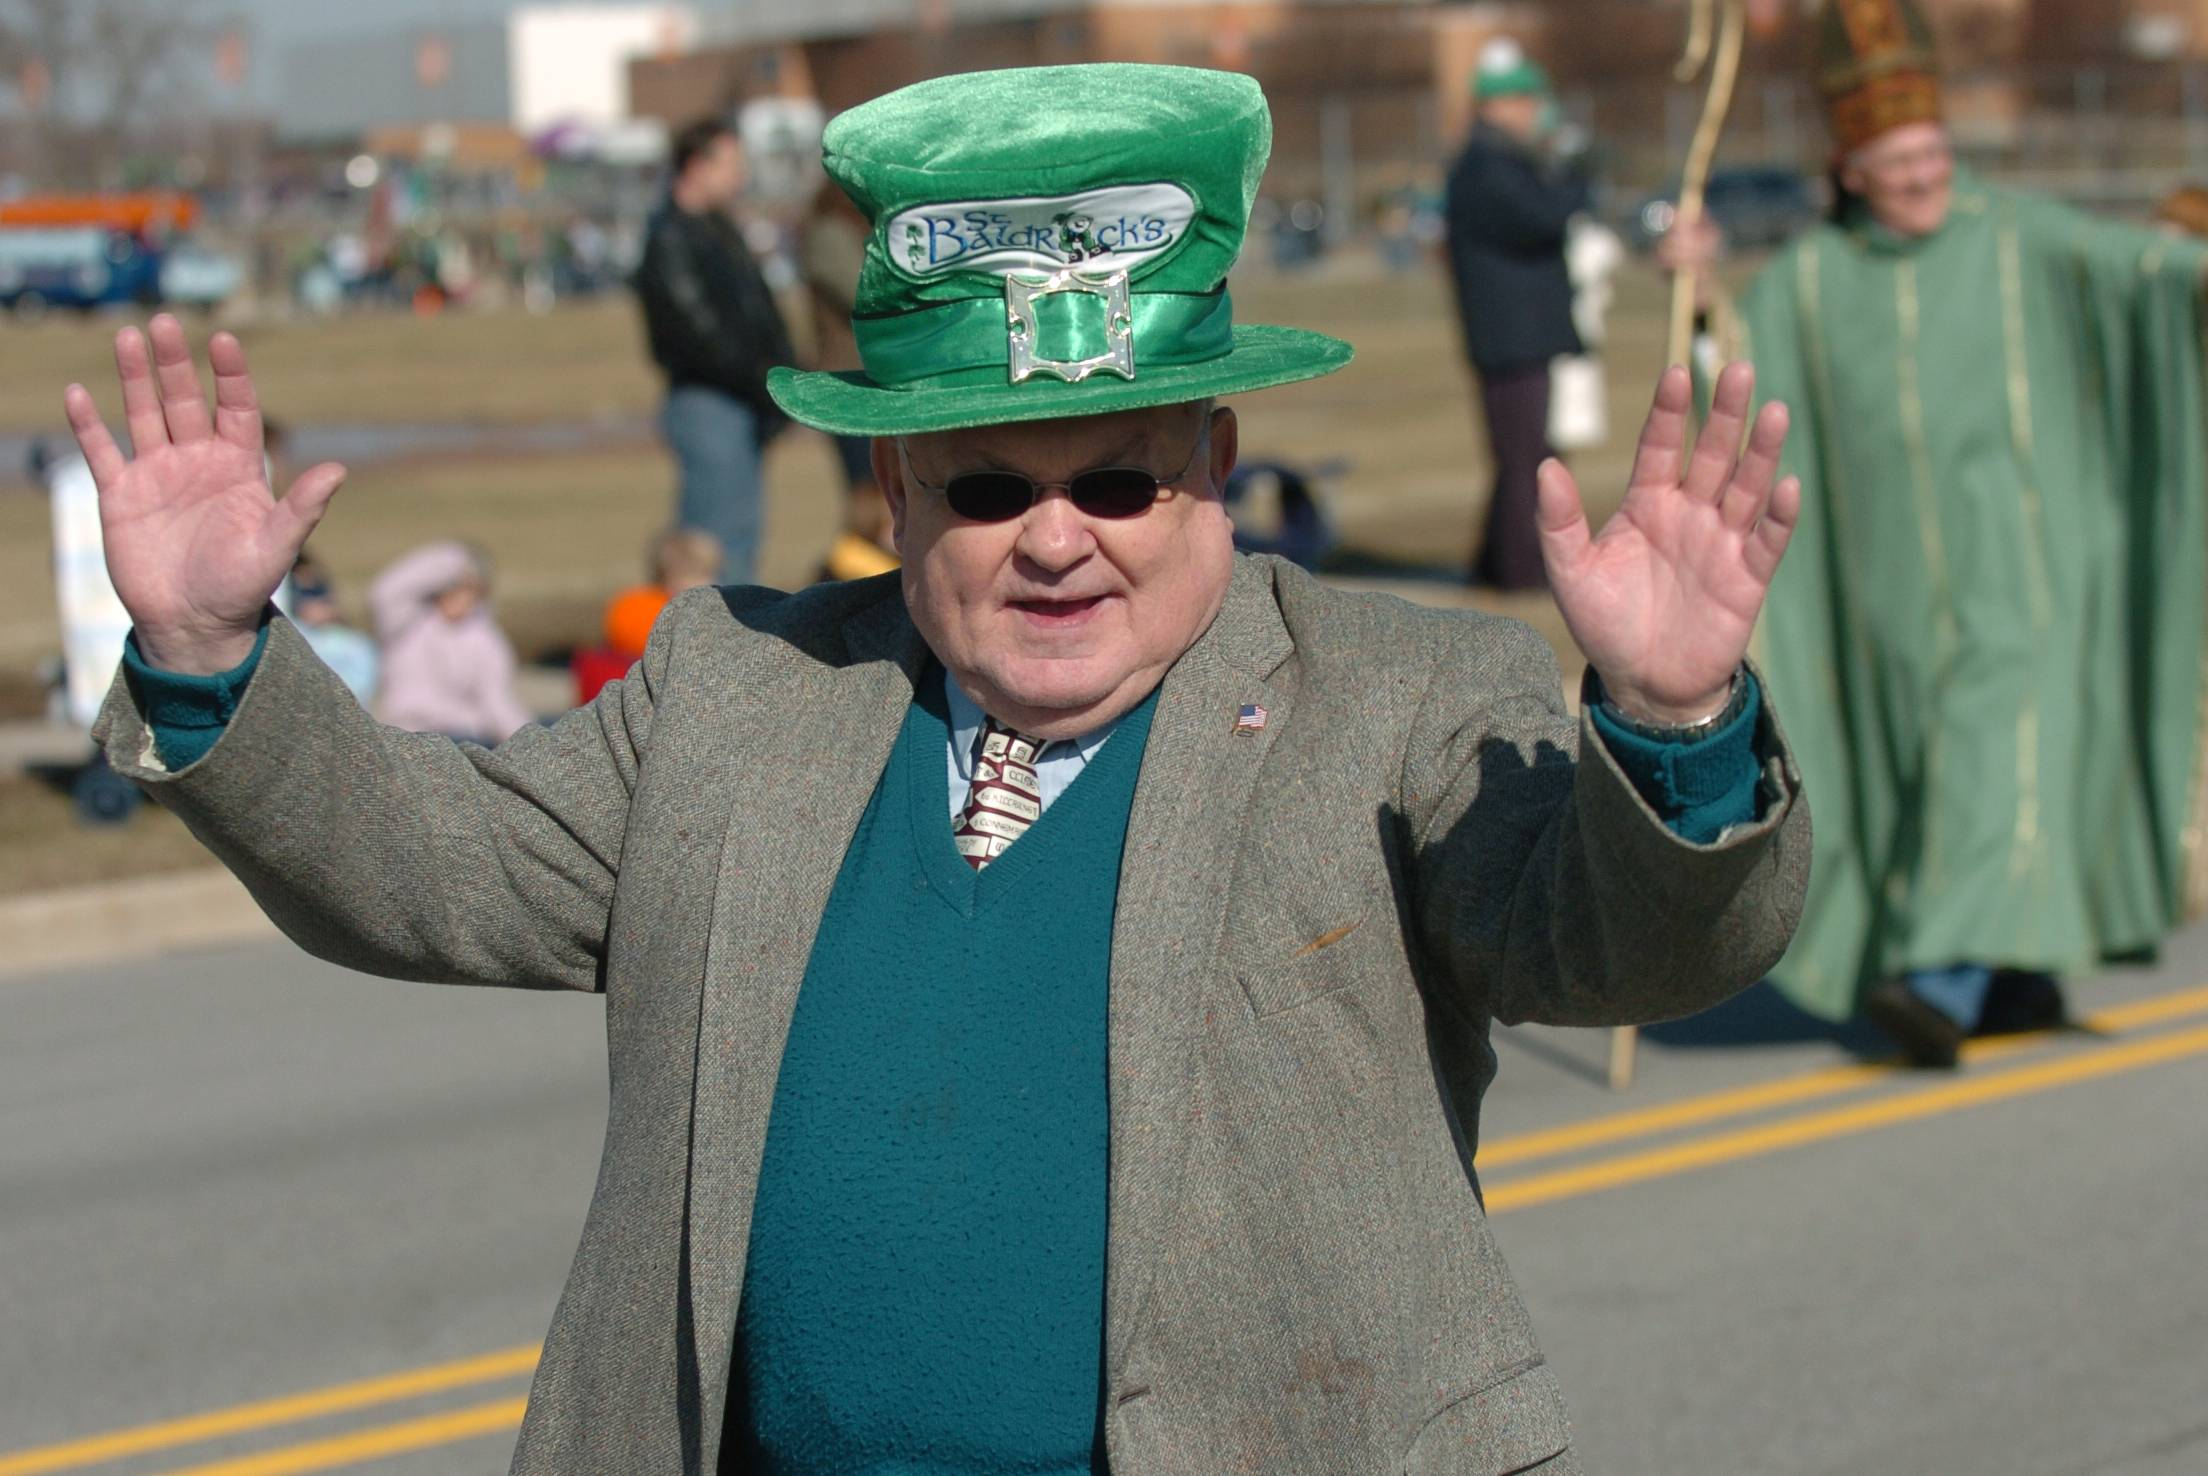 Naperville Mayor George Pradel waves to parade goers during a past West Suburban Irish St. Patrick's Day Parade in Naperville.